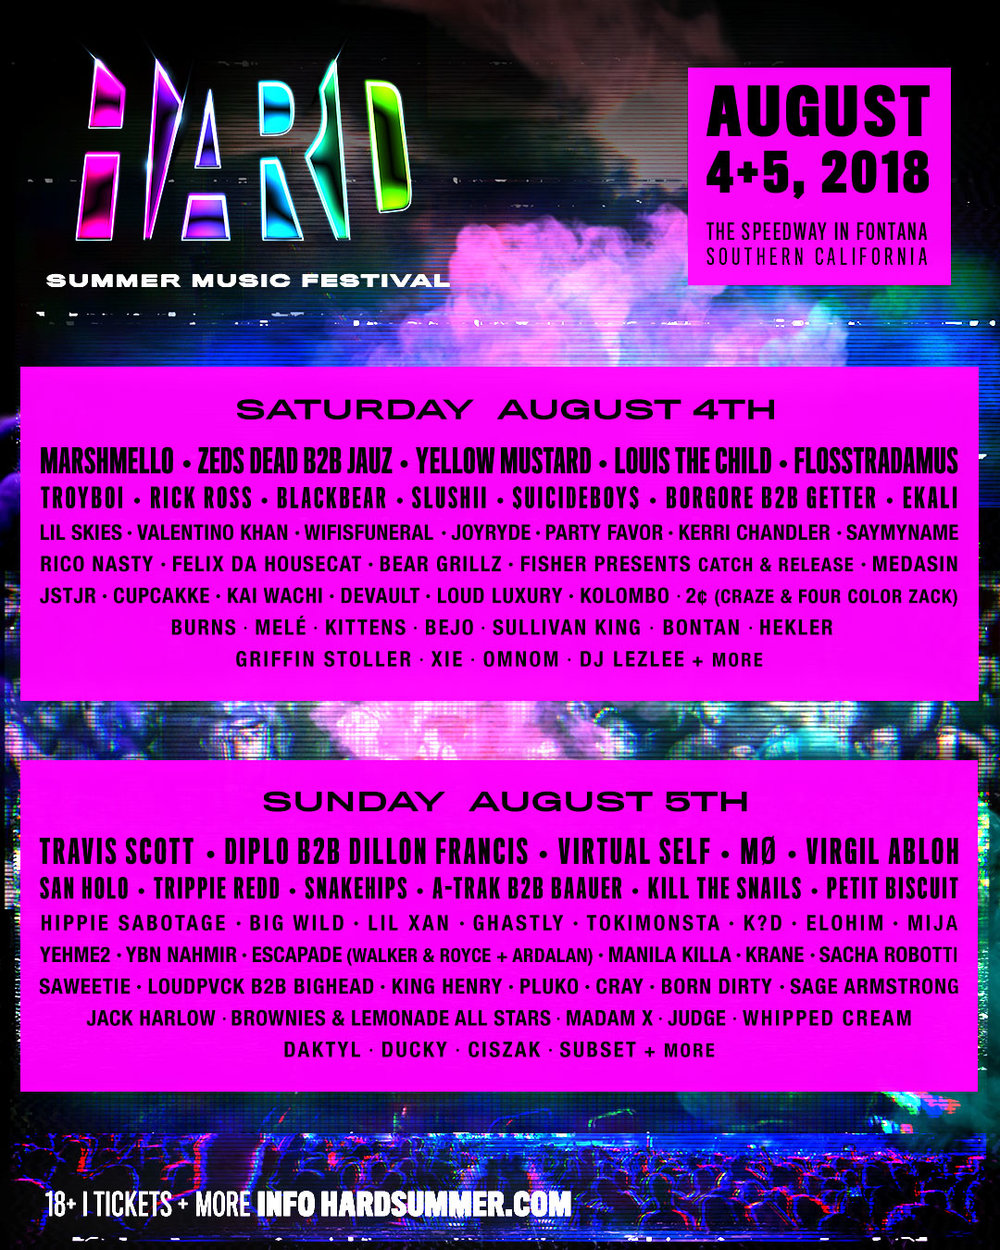 HARD Summer Music Festival - HARD veterans will be thrilled to find many venue upgrades this year, including:- Parking lot shuttles to the entrance- More entry lanes, now with shade!- Easier access to the Speedway from the new entrance- Easier stage access, with the Green stage now inside the Speedway- More signage, so you know where to go!- Enhanced audiovisual stage production- Upgraded VIP experience- More shaded areas- More water refill stations- Water features throughout the venue- Multiple venue safety improvements- More exits, with clear signage and water station